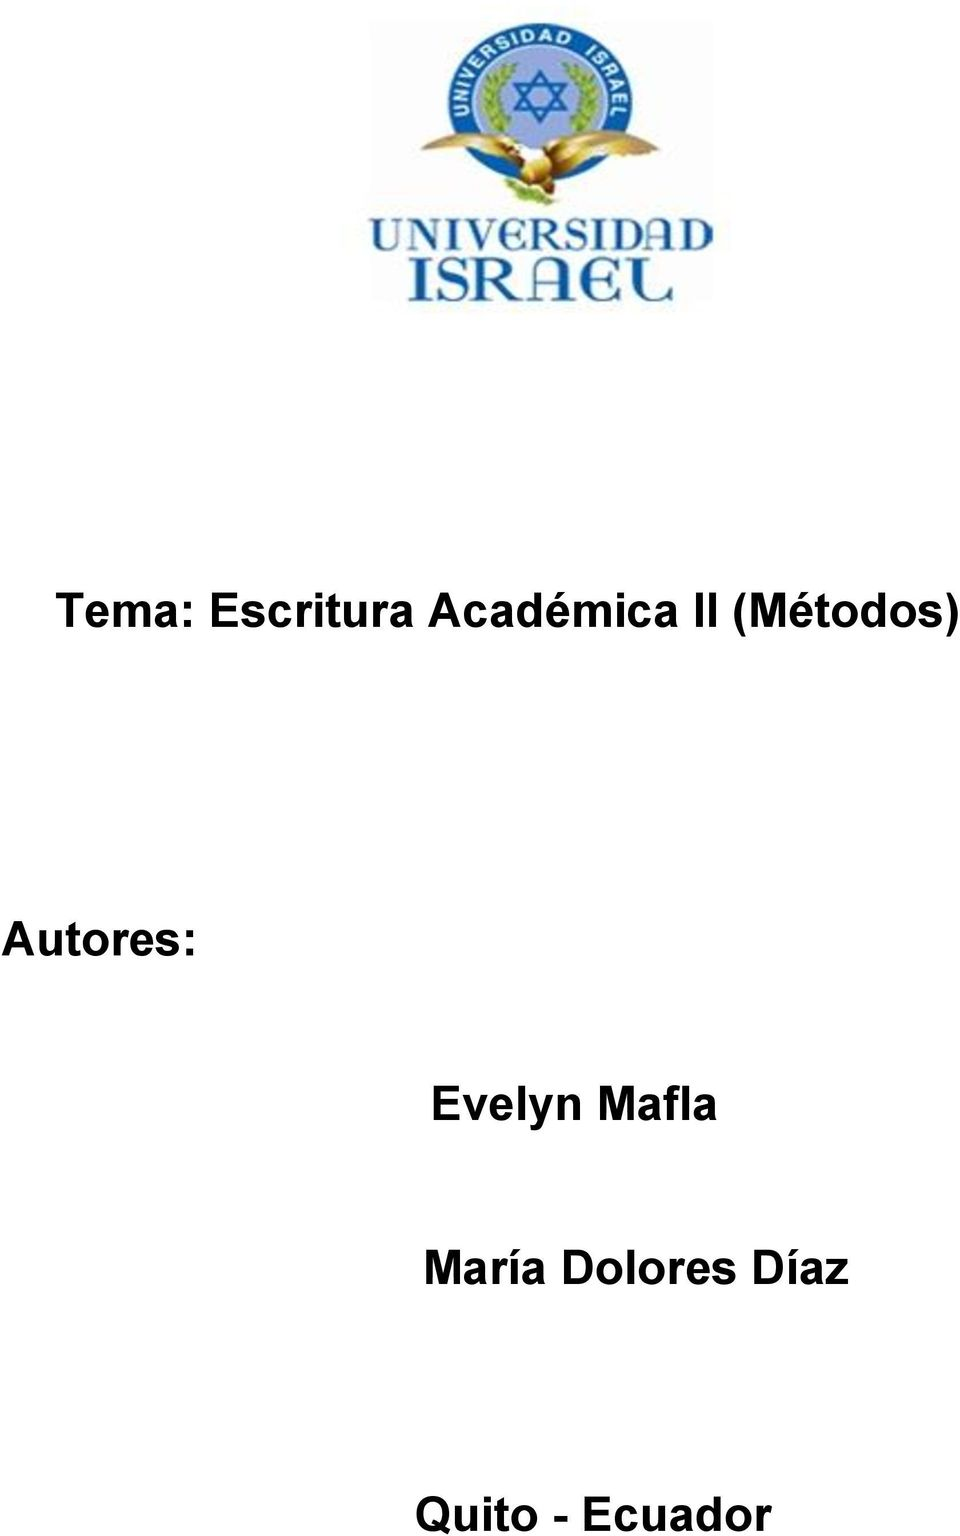 Autores: Evelyn Mafla